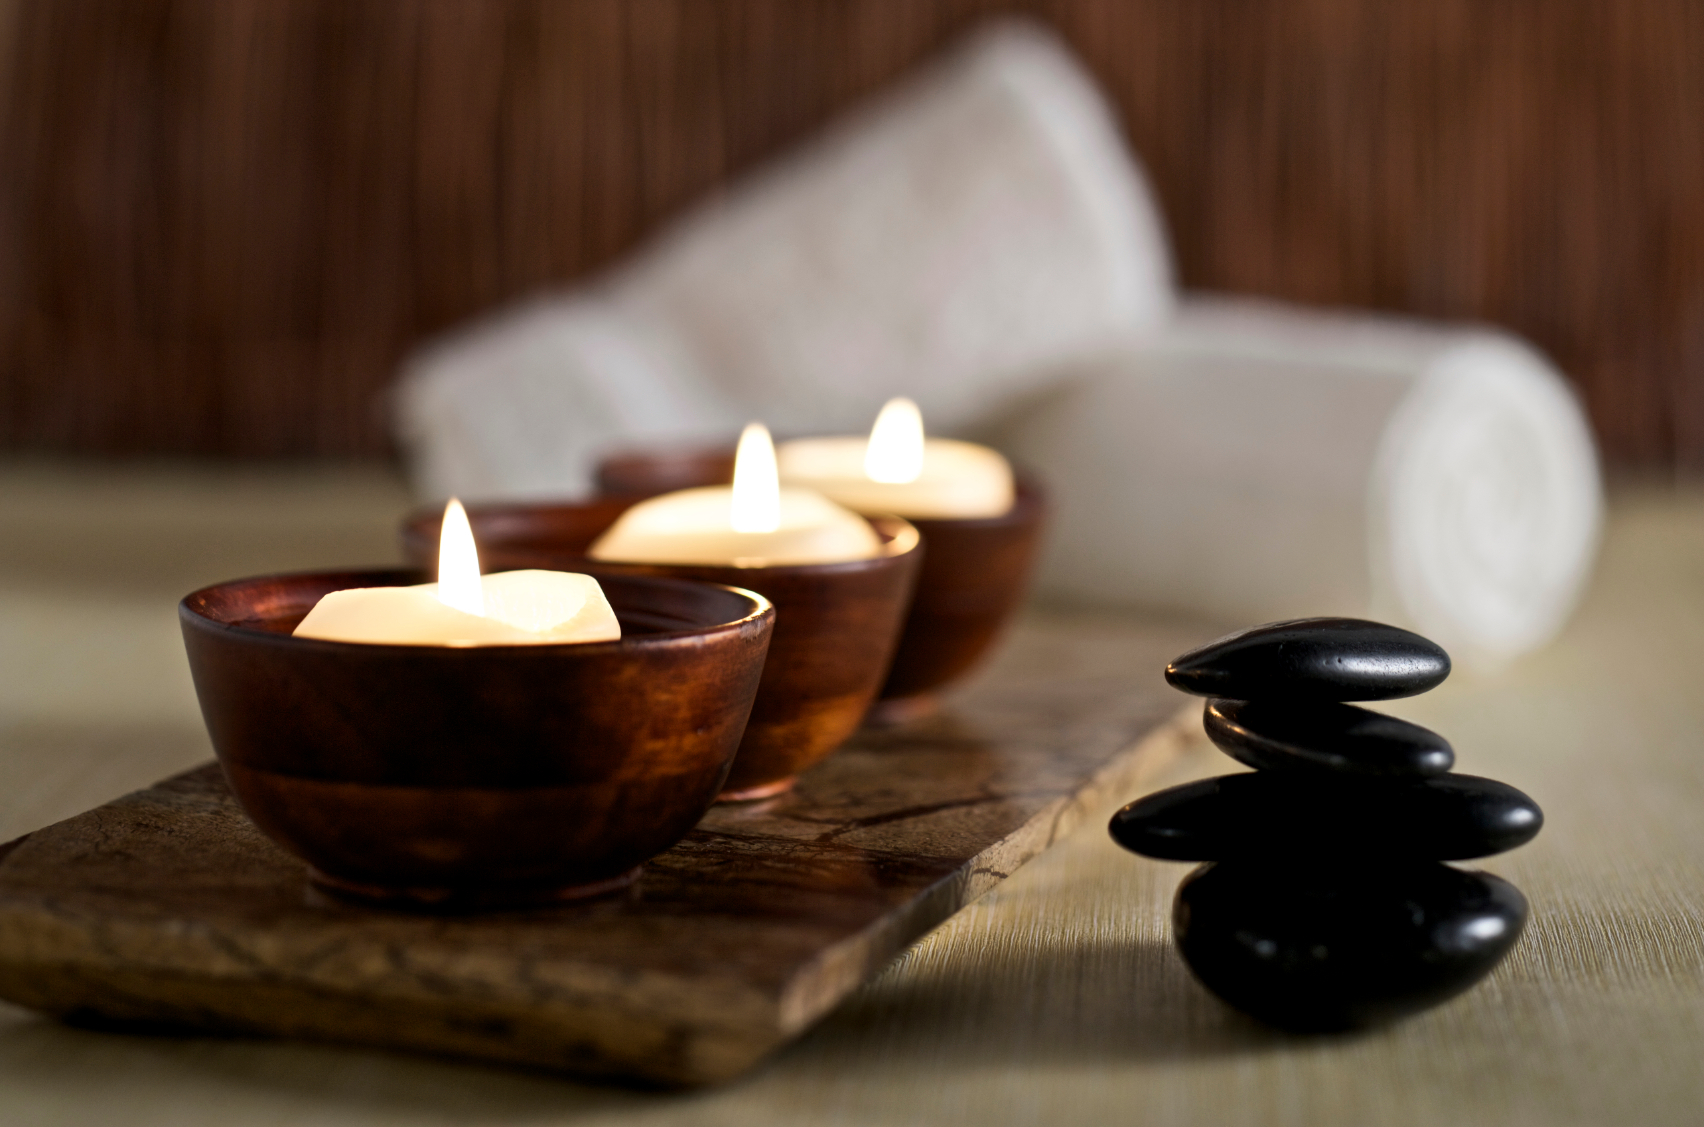 When you visit our Fort Worth spa, you will find that spavia is the perfect environment for relaxation, healing, and pampering.